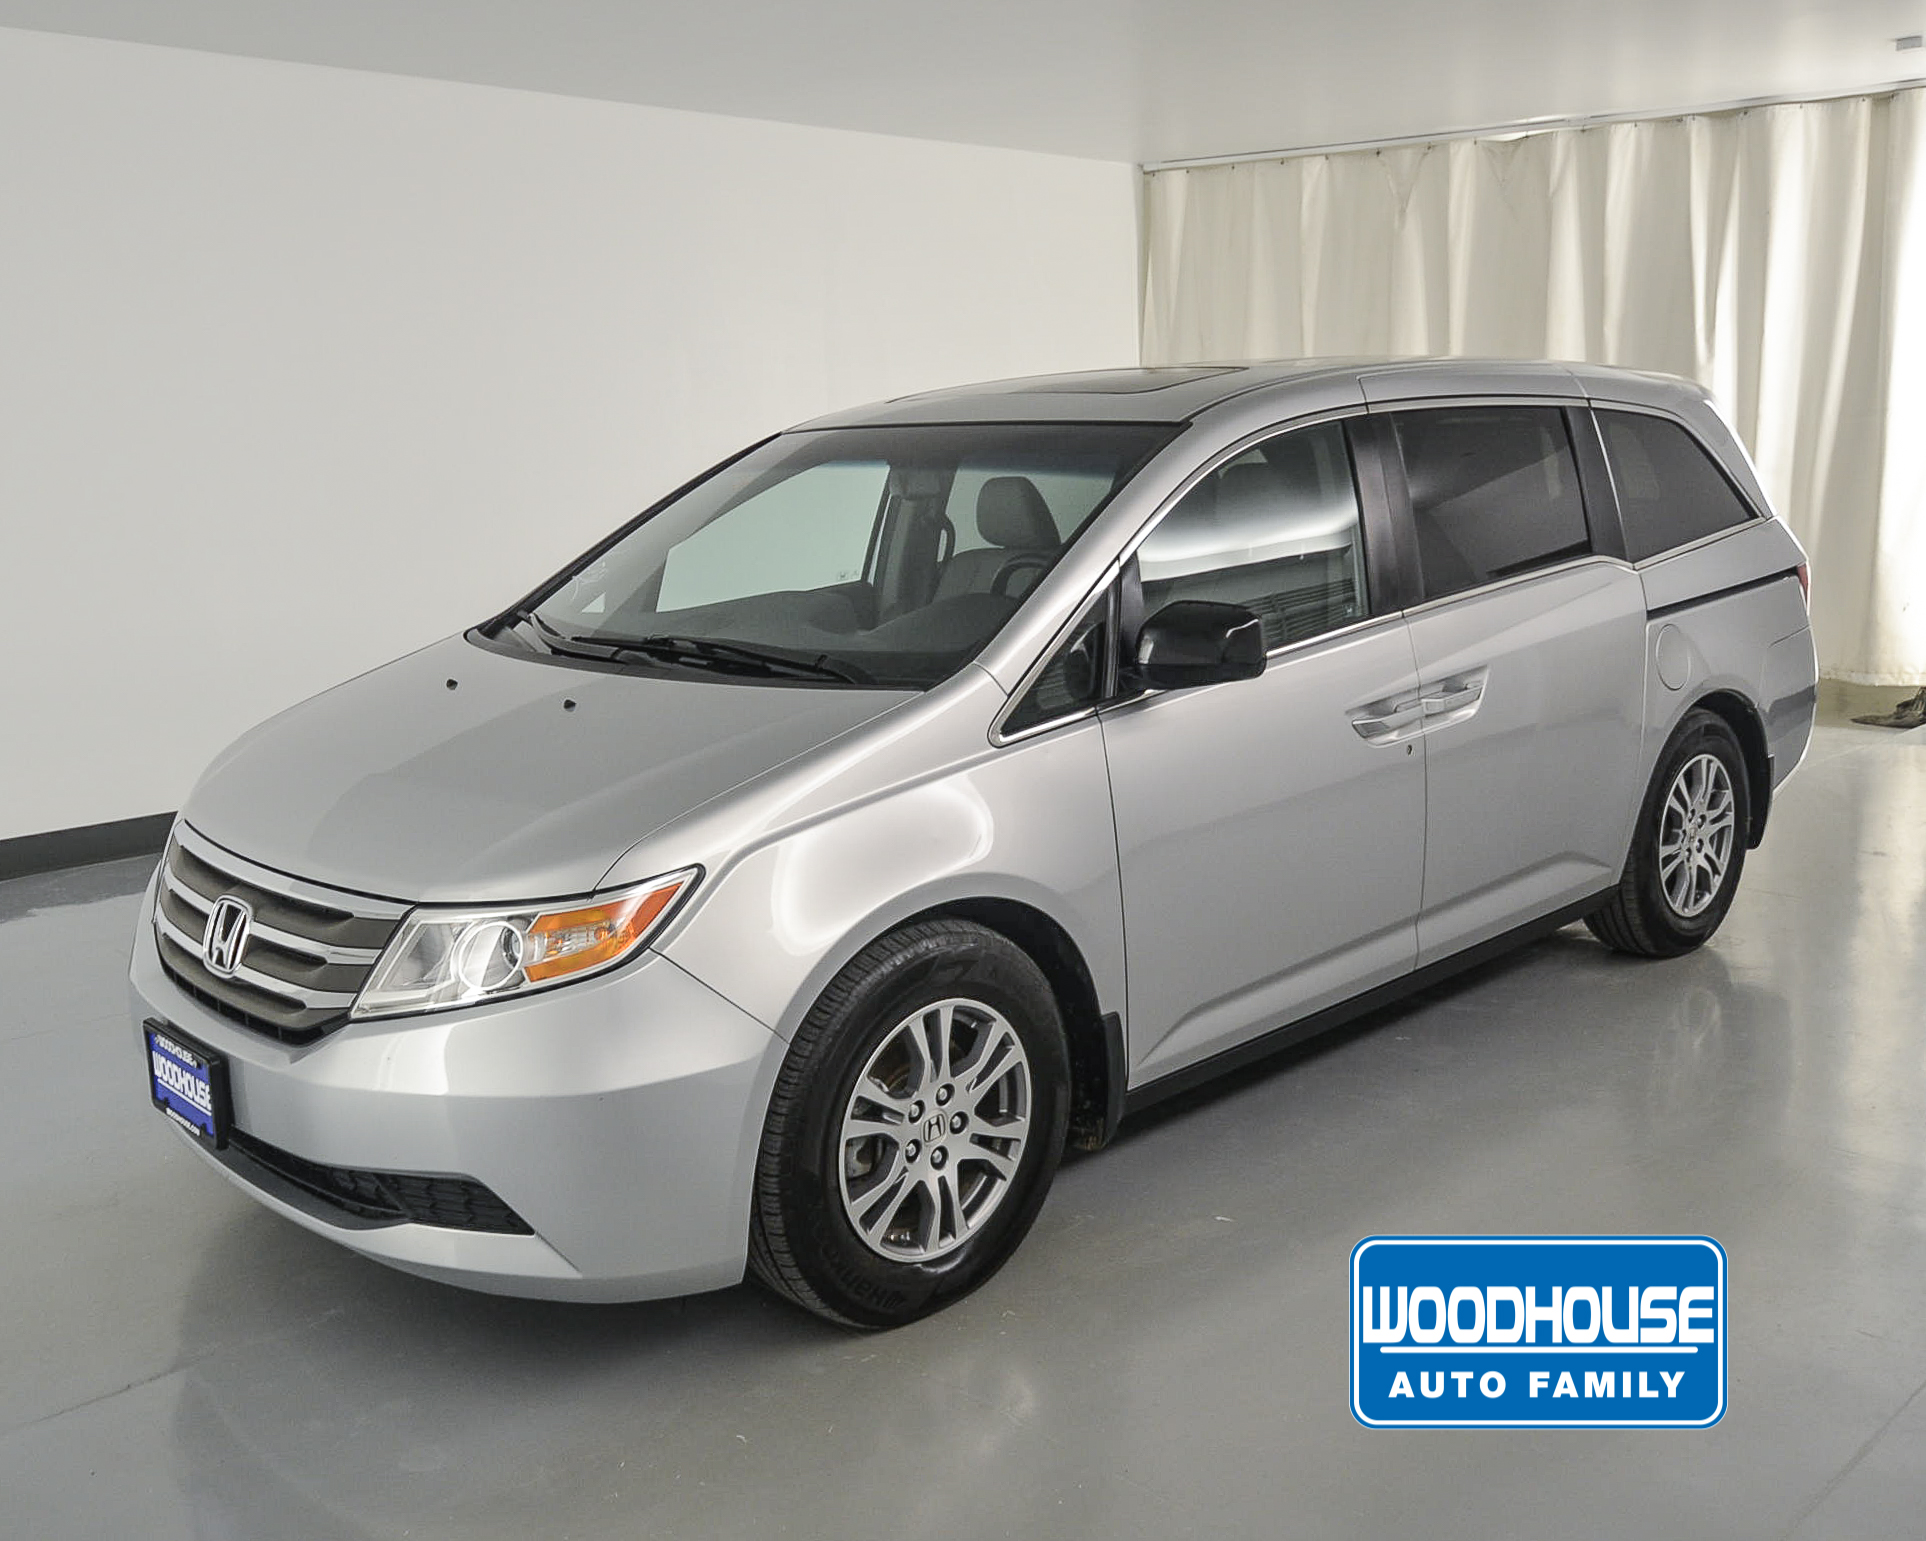 2012 Honda Odyssey For Sale >> Woodhouse Used 2012 Honda Odyssey For Sale Chevy Buick